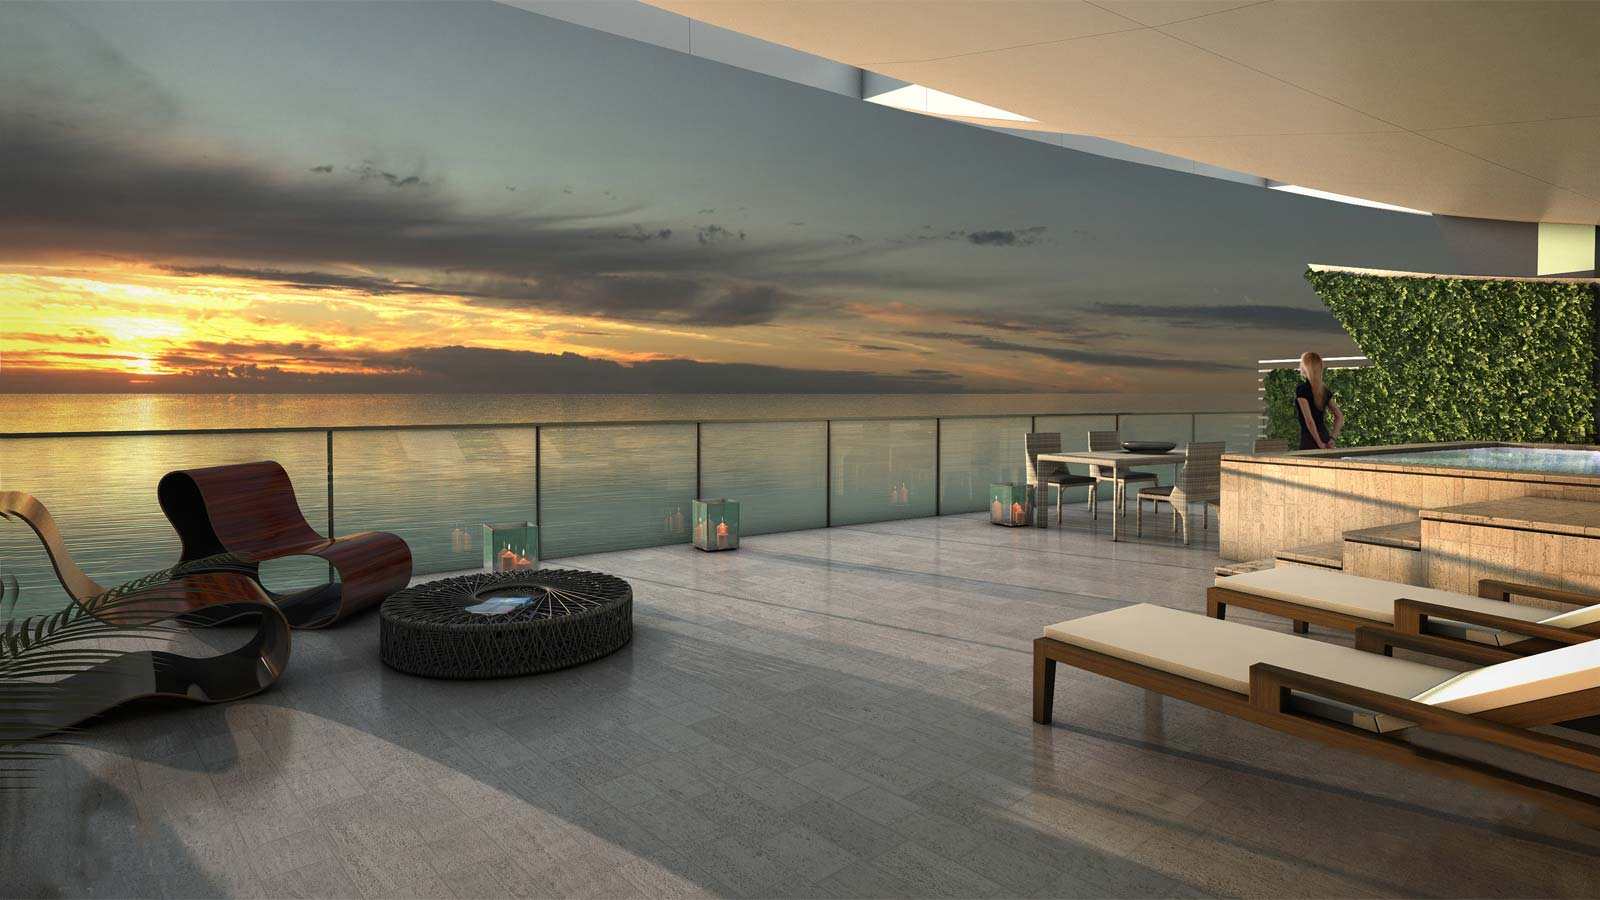 Roof terrace overlooking the sea in Florida